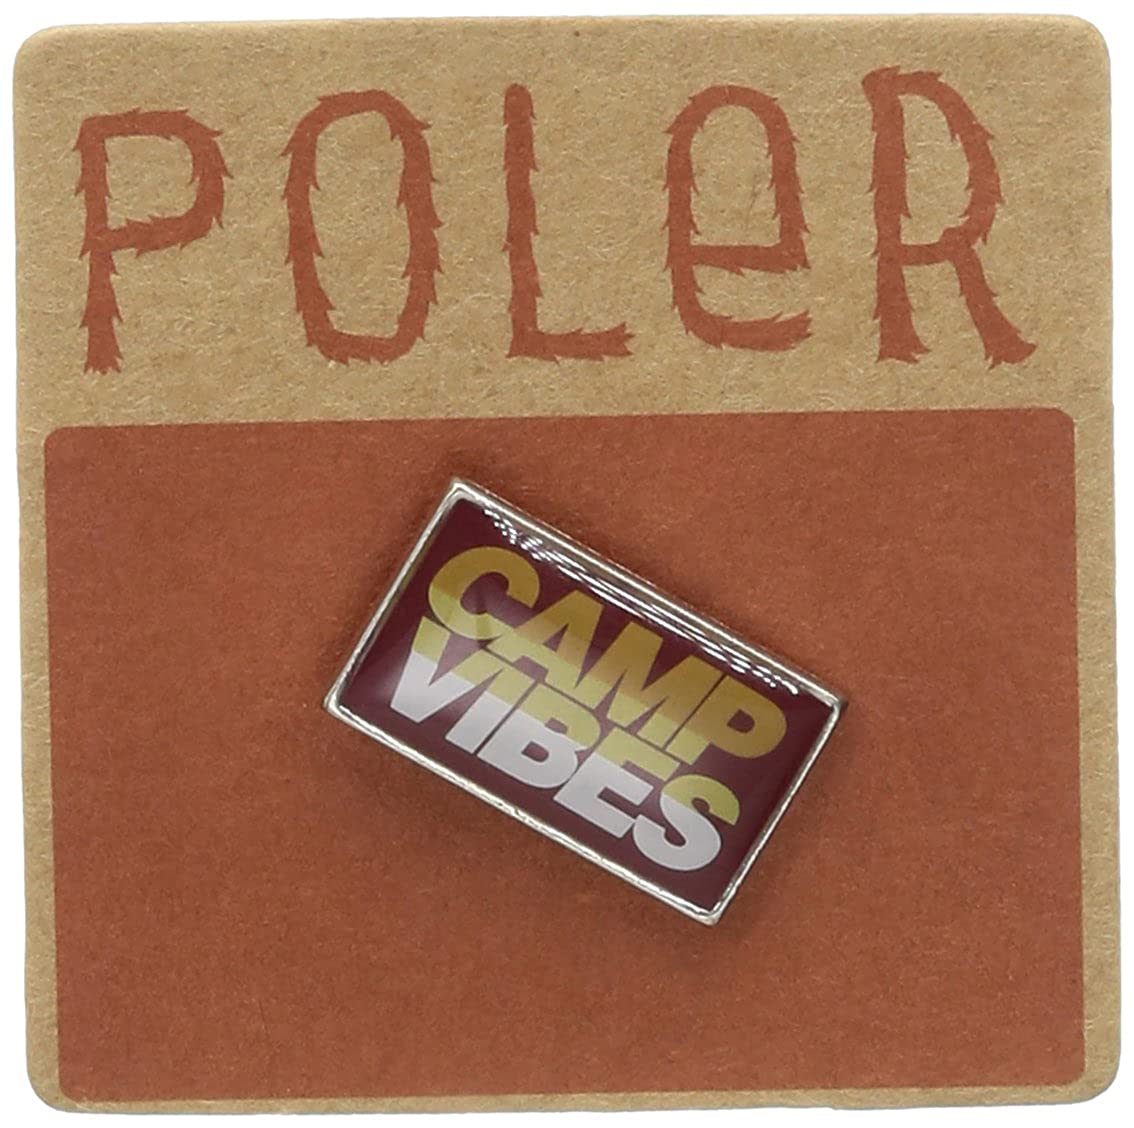 Poler Men's Camp Vibes Pin Multi One Size Poler Young Mens Child Code 706003